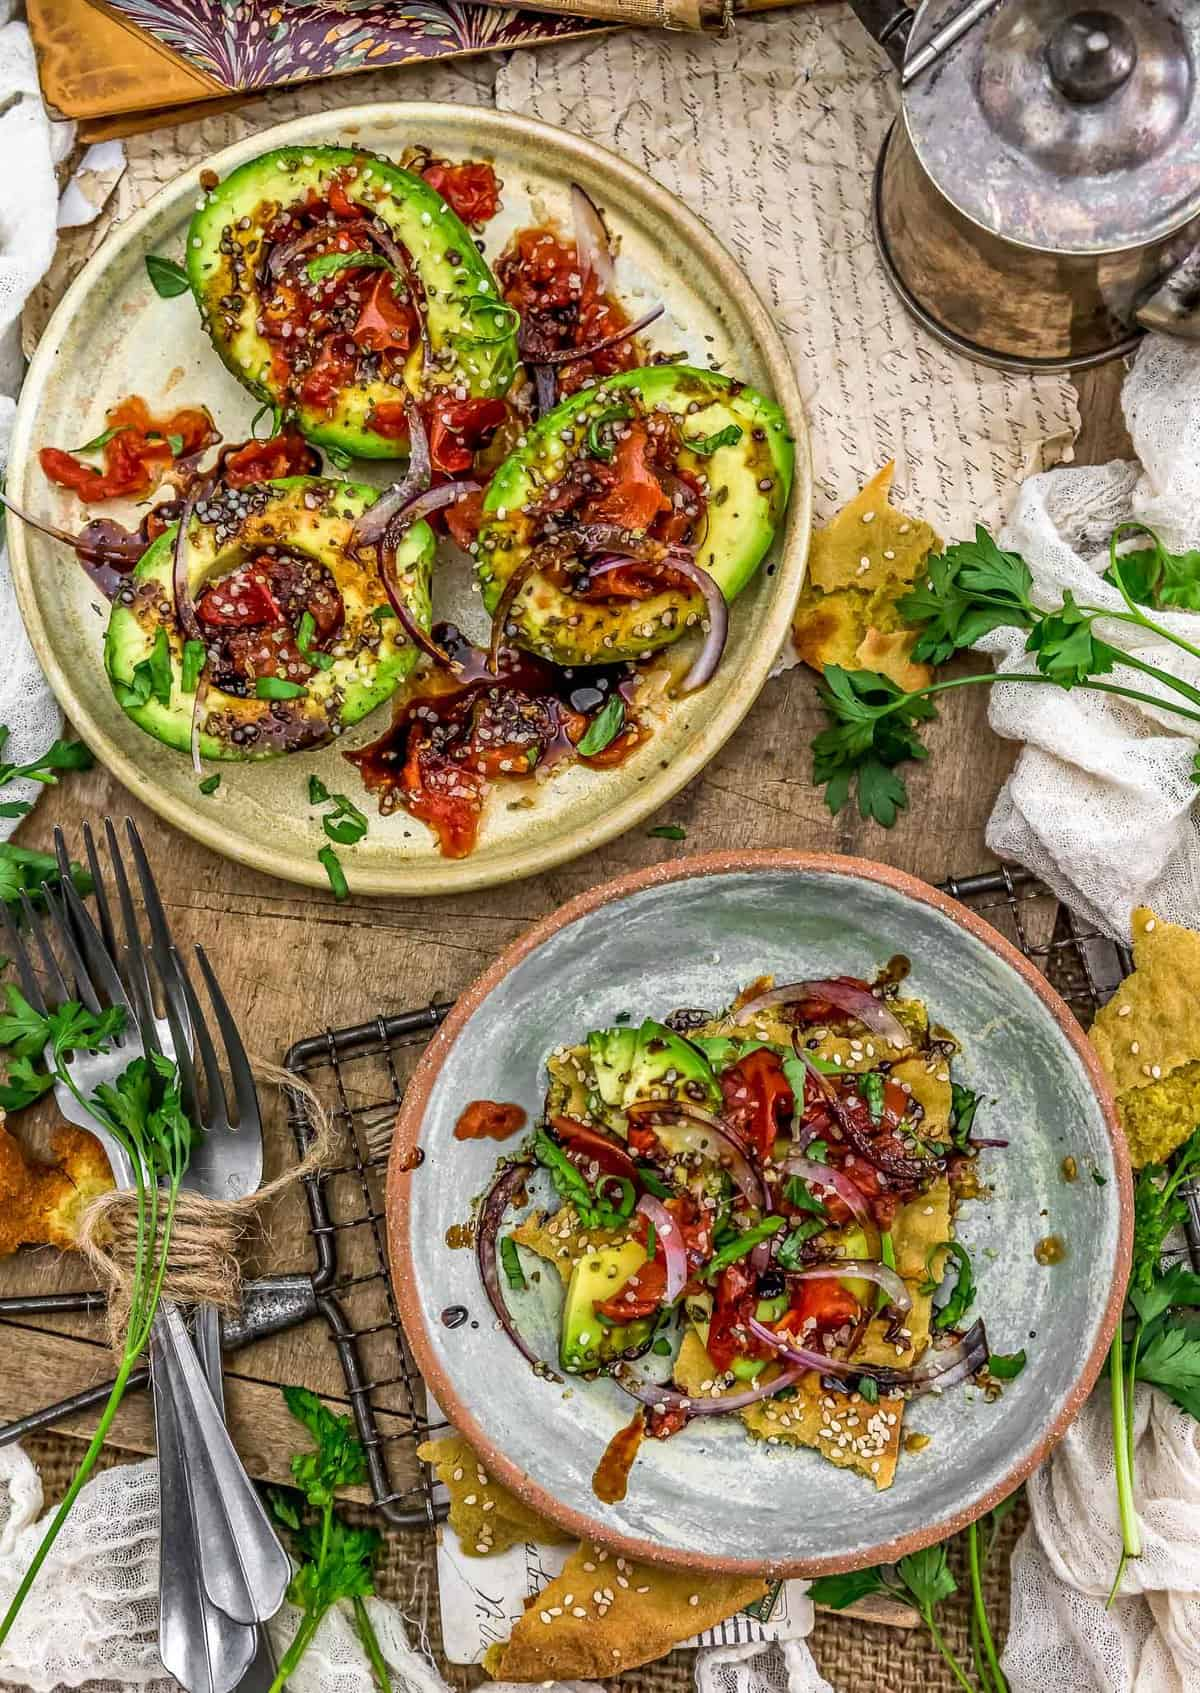 Tablescape of Roasted Tomato Stuffed Avocados with Balsamic Reduction